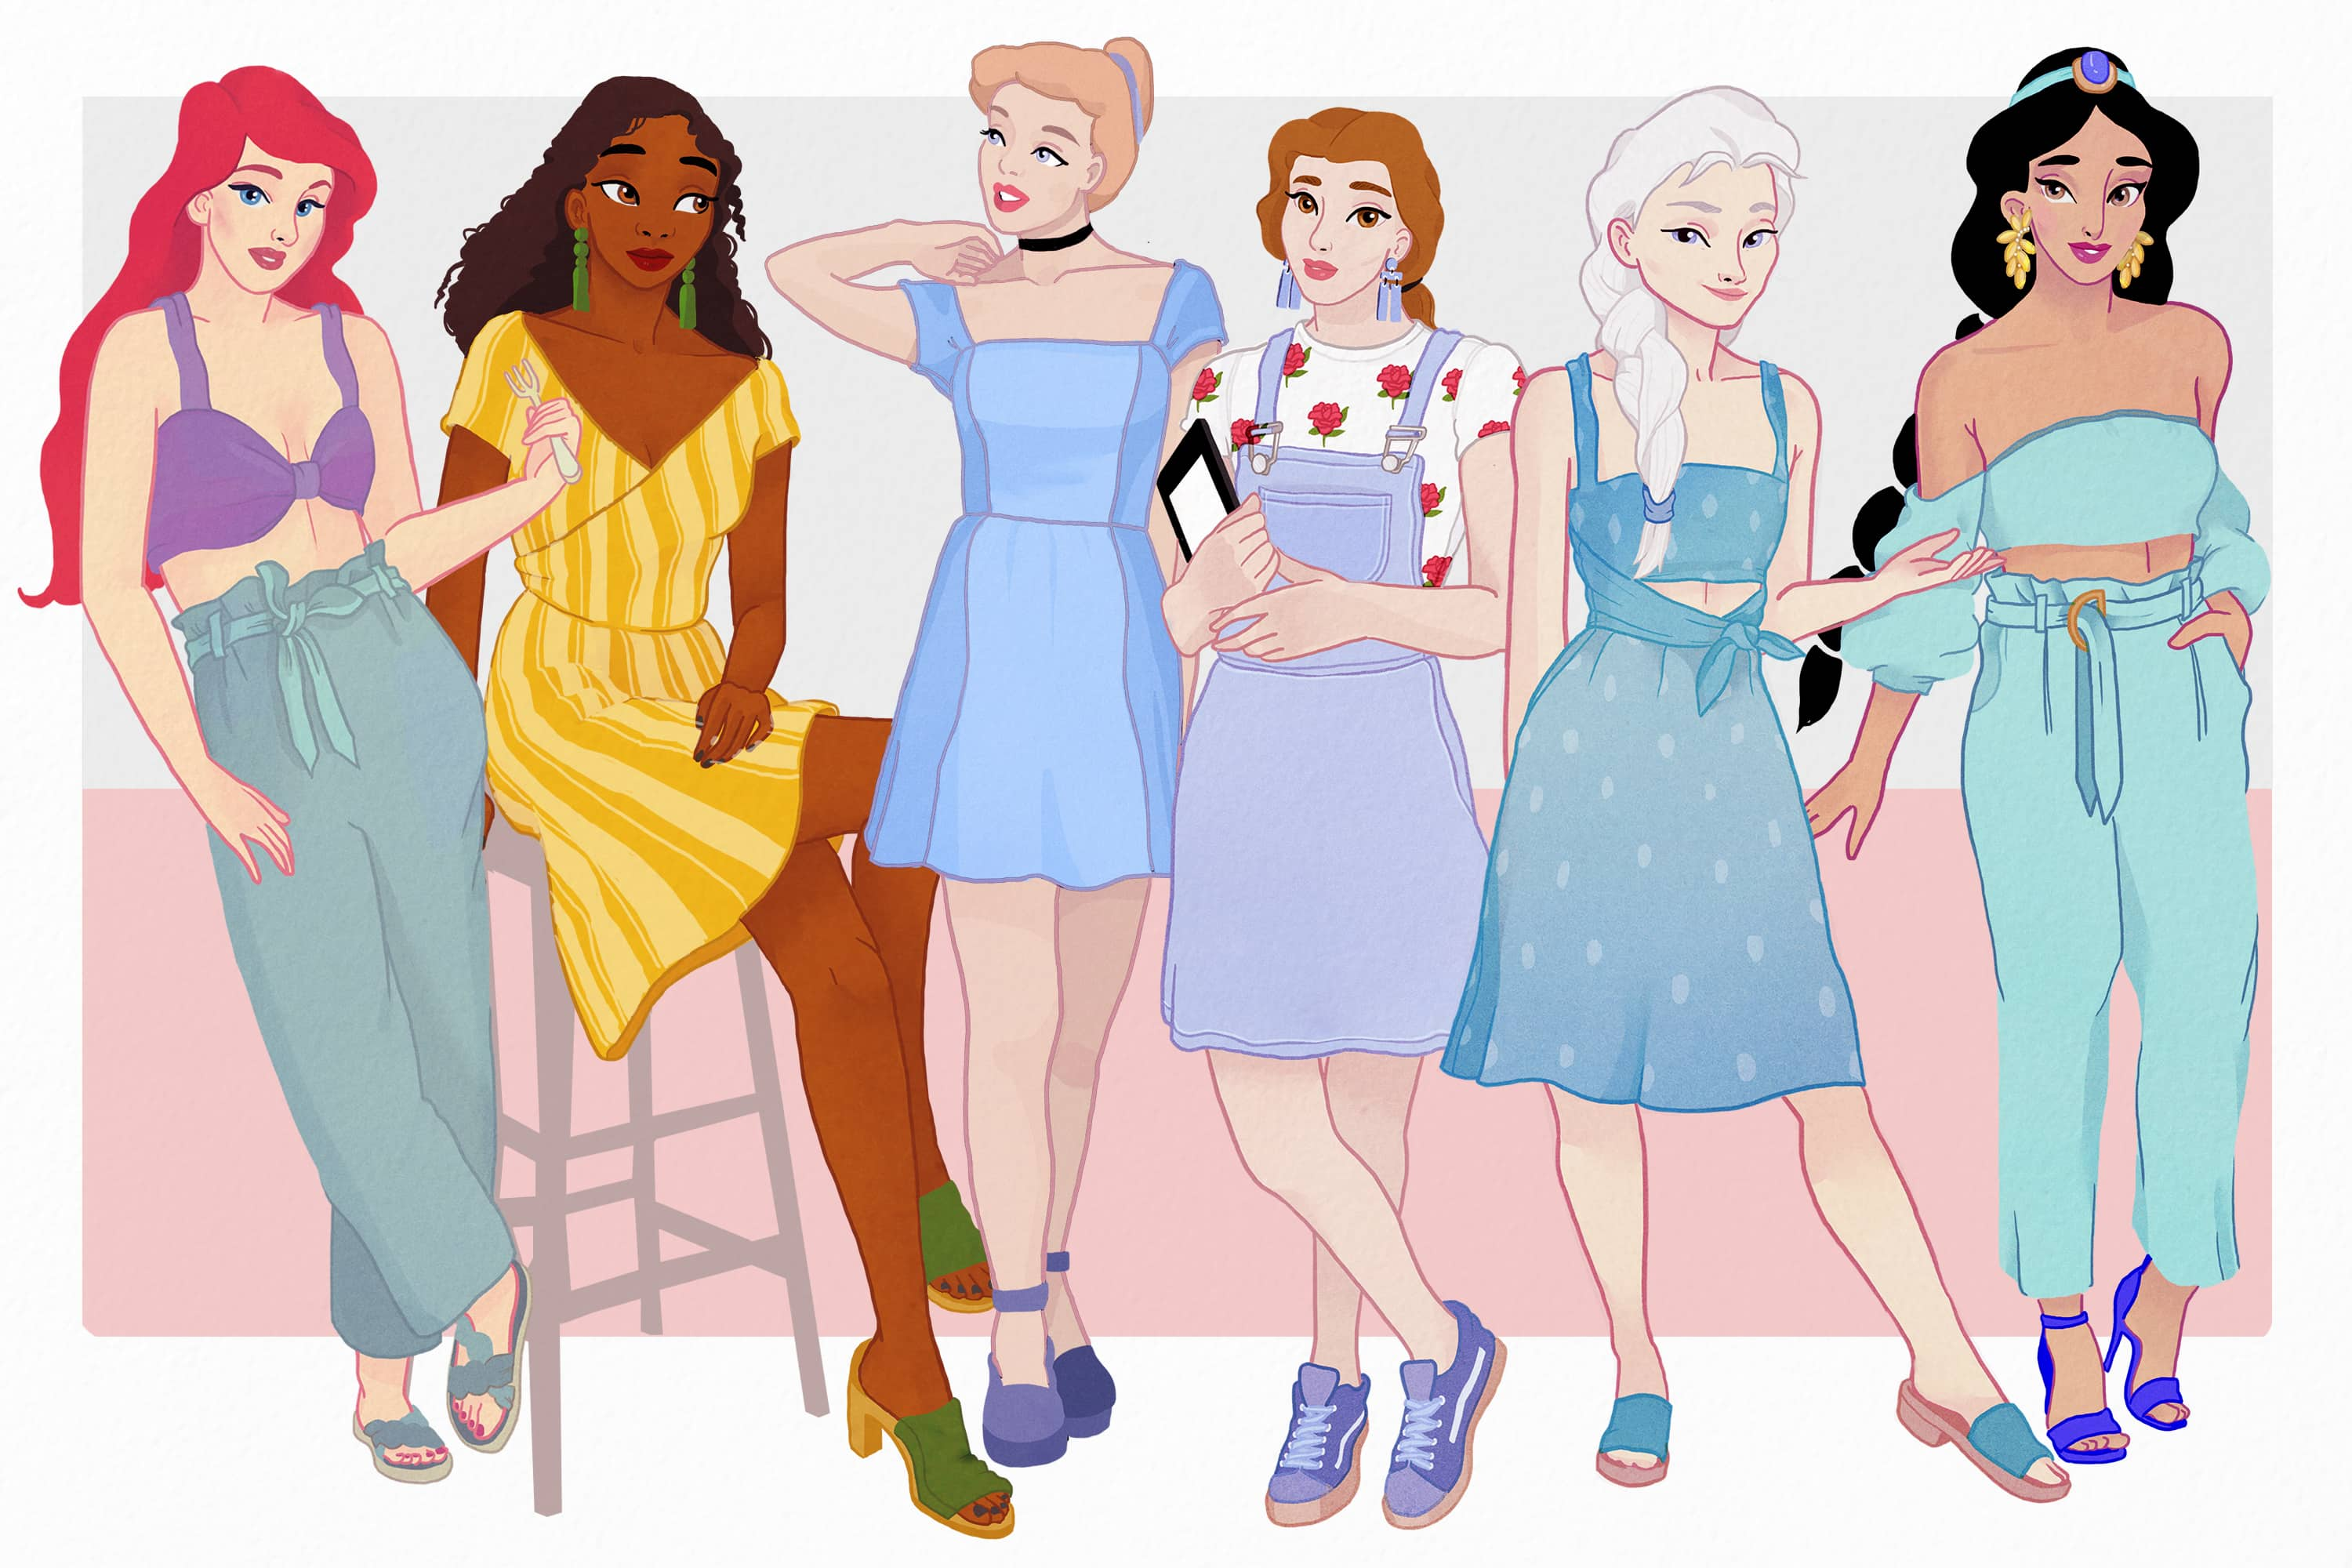 af4da3e24d6 Disney Princesses Downsize Into Tiny Houses